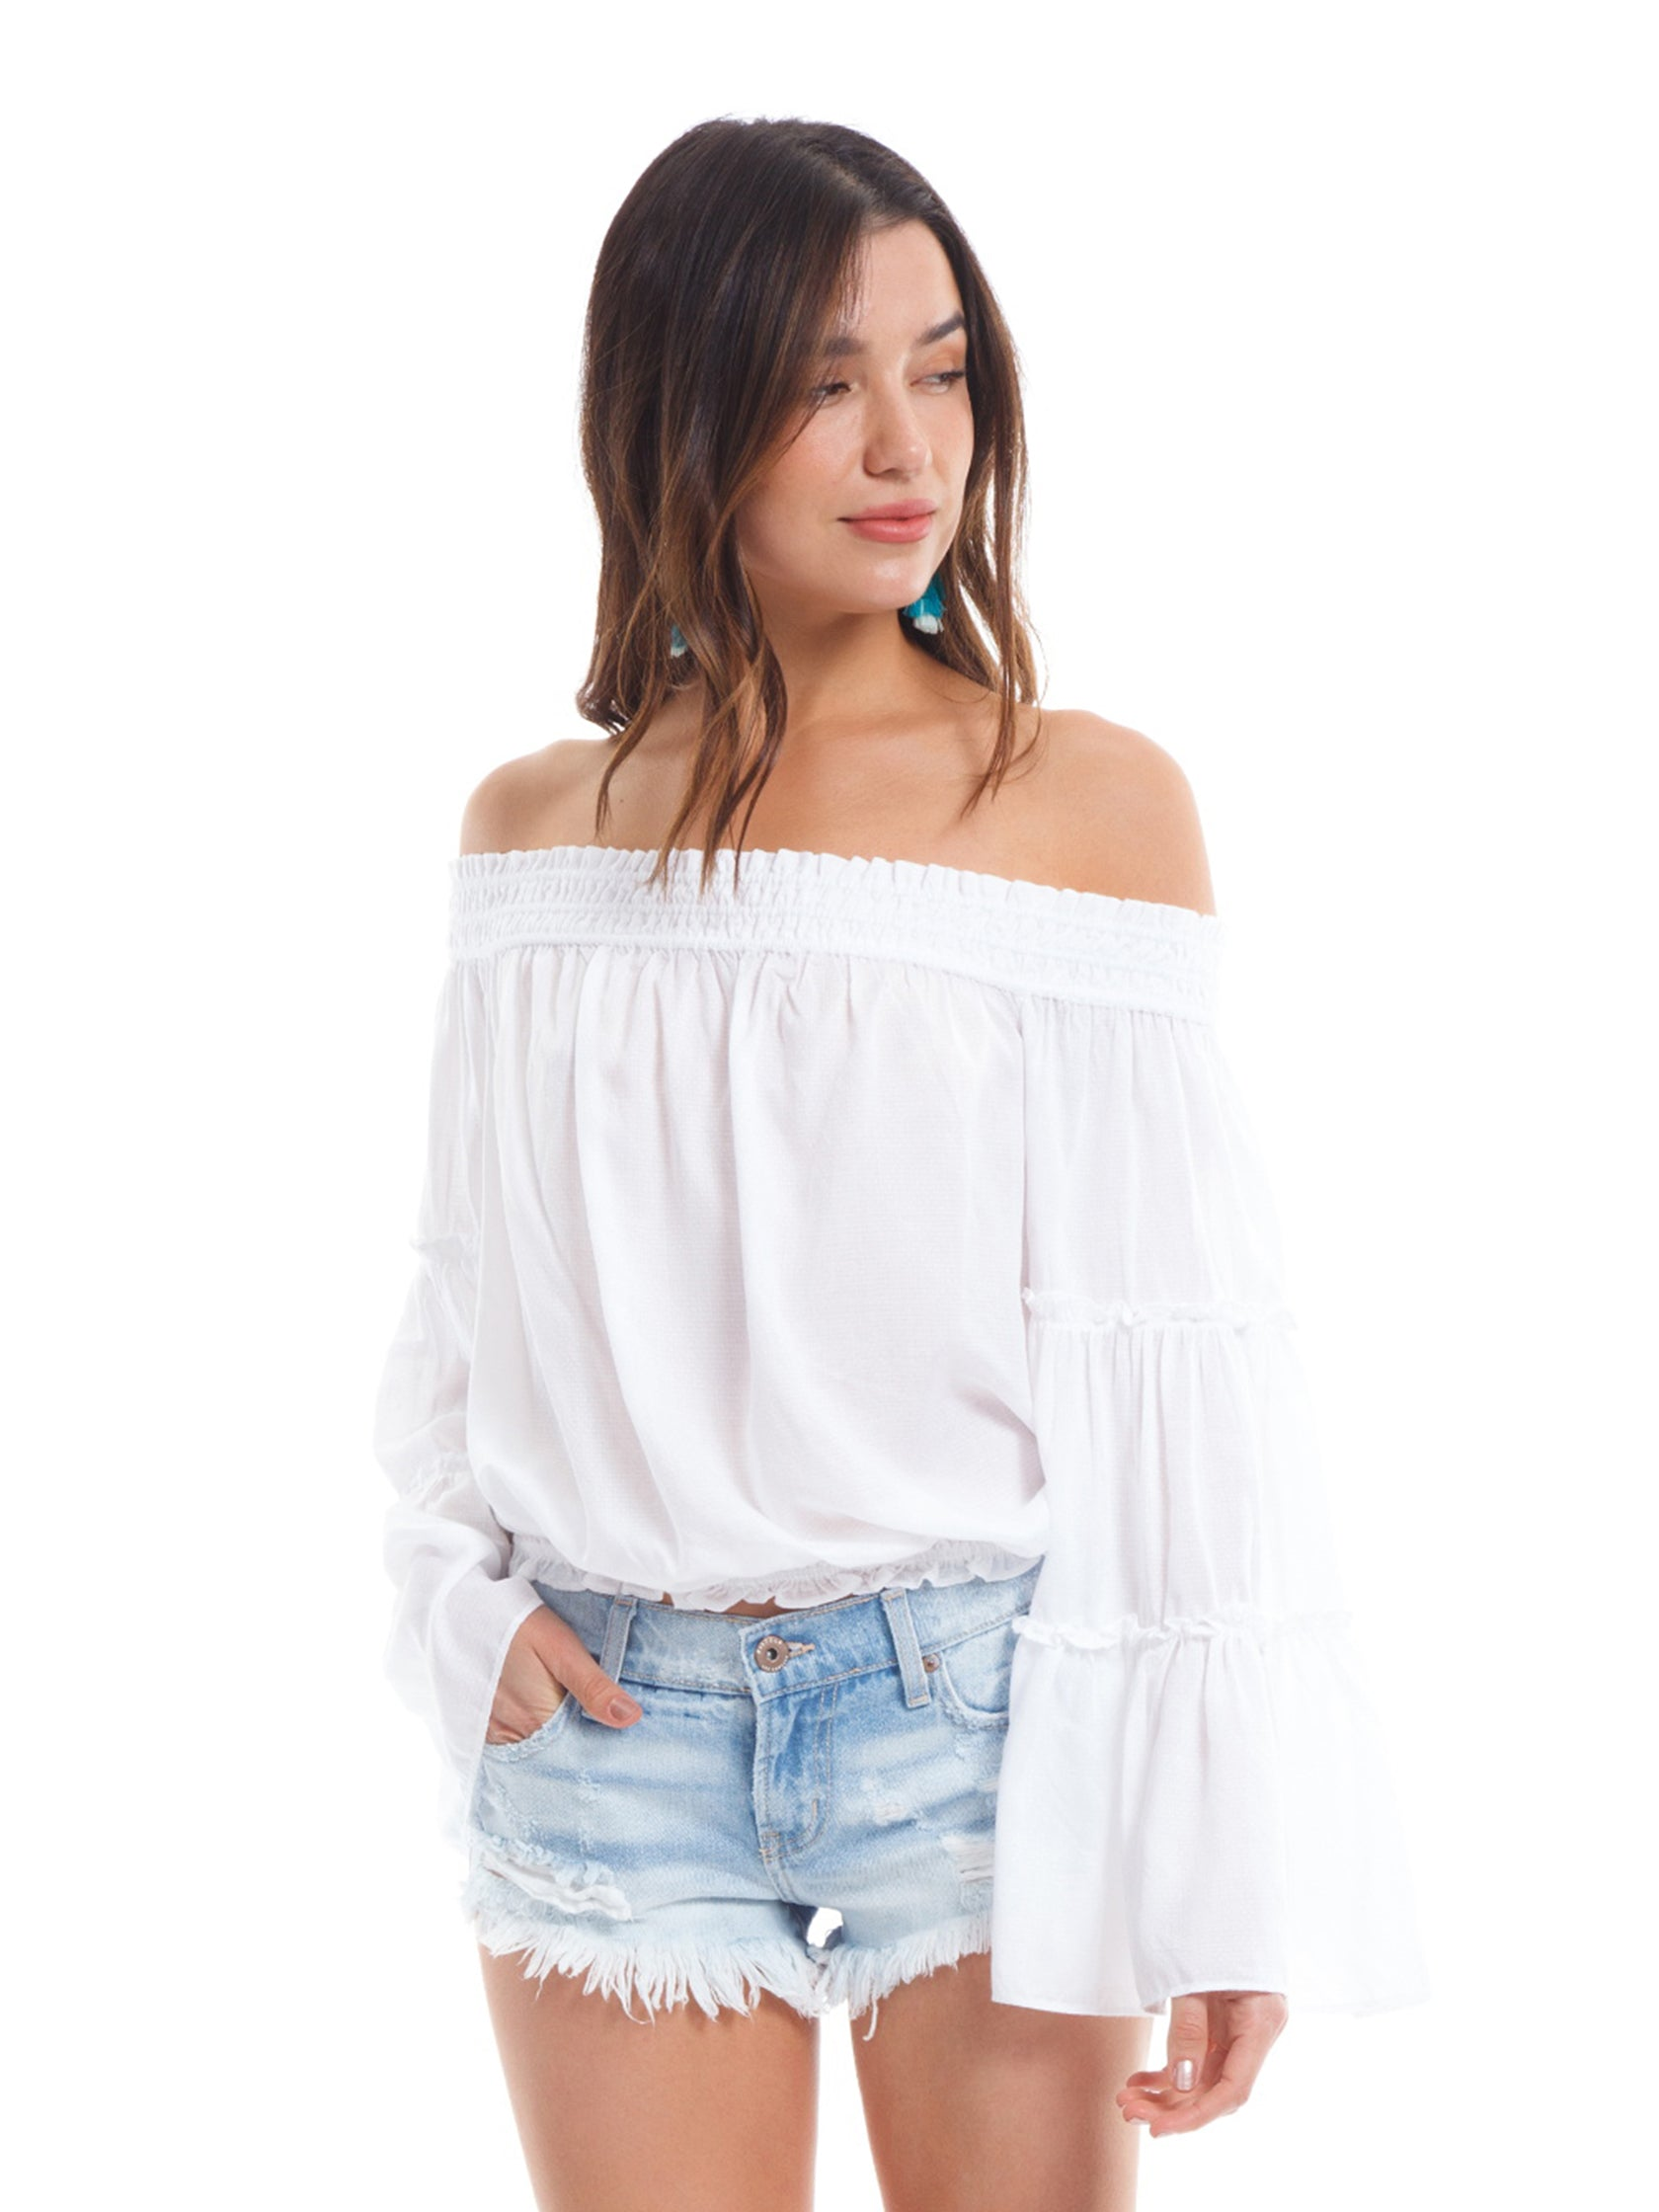 Woman wearing a top rental from Free People called Free Spirit Top